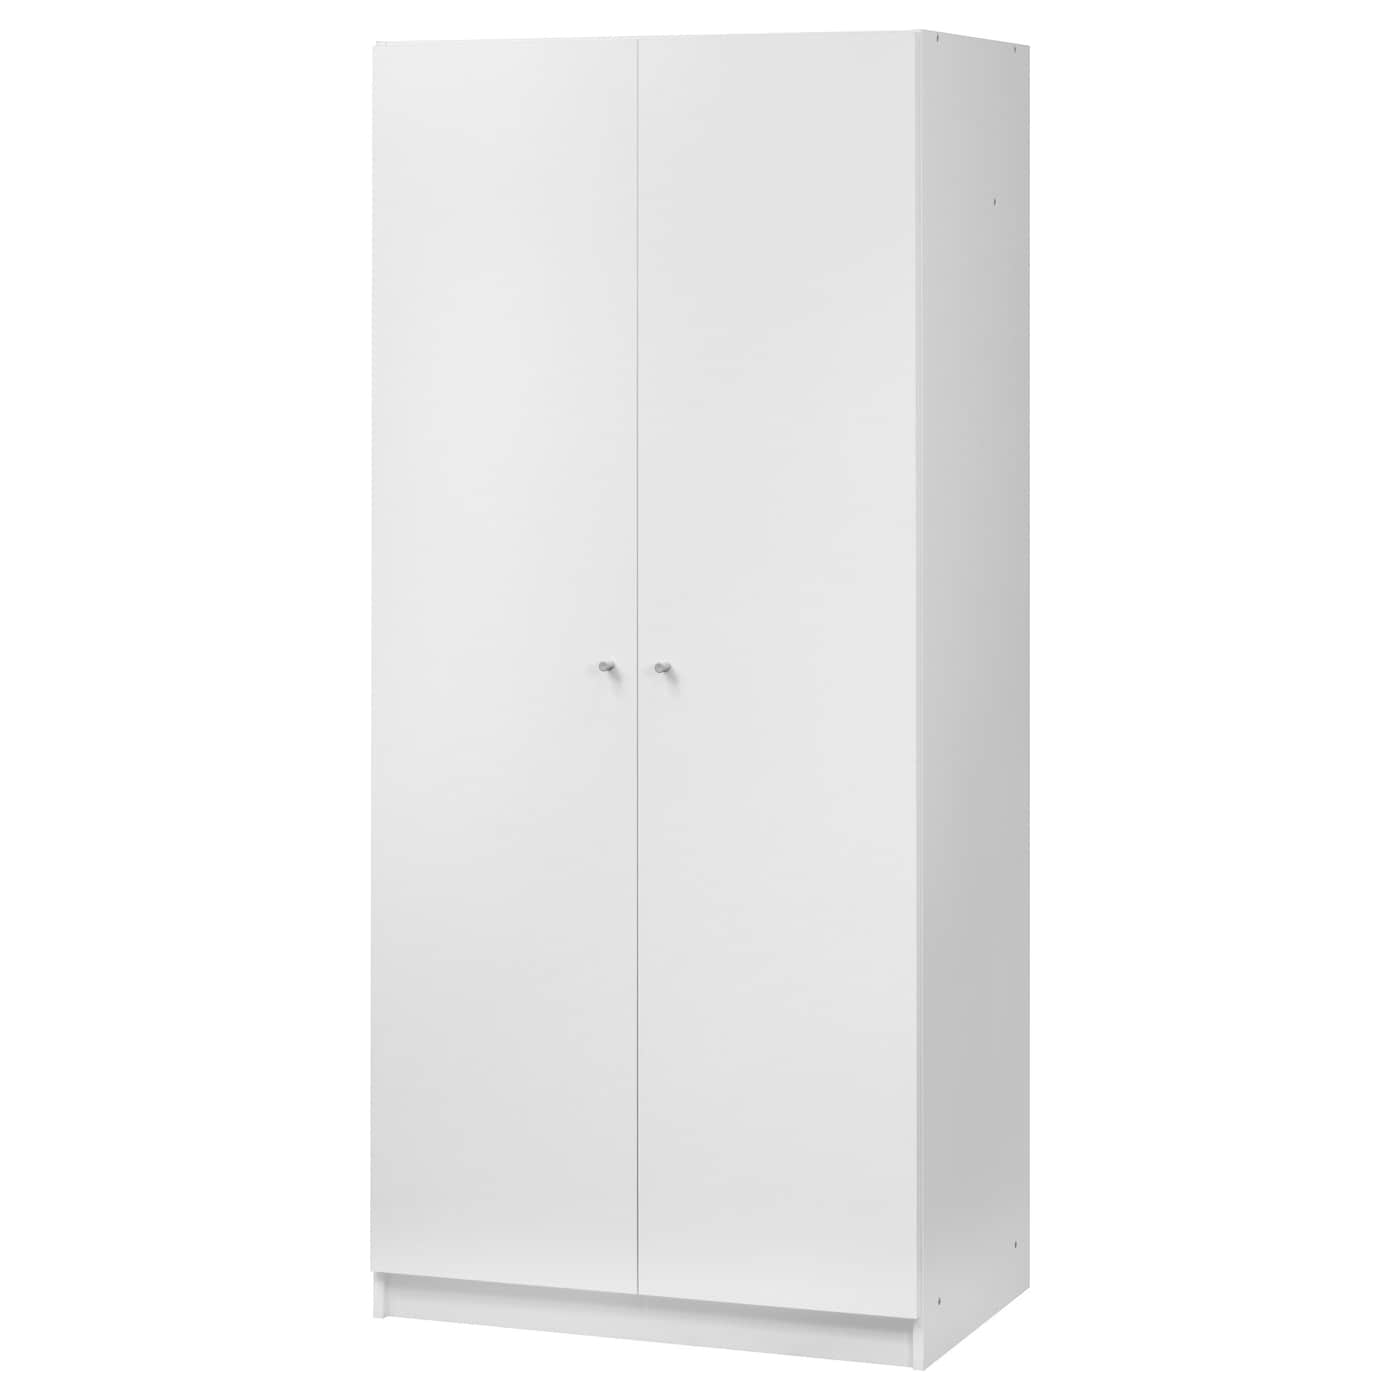 Bostrak wardrobe white 80x50x180 cm ikea for Garderobe 80